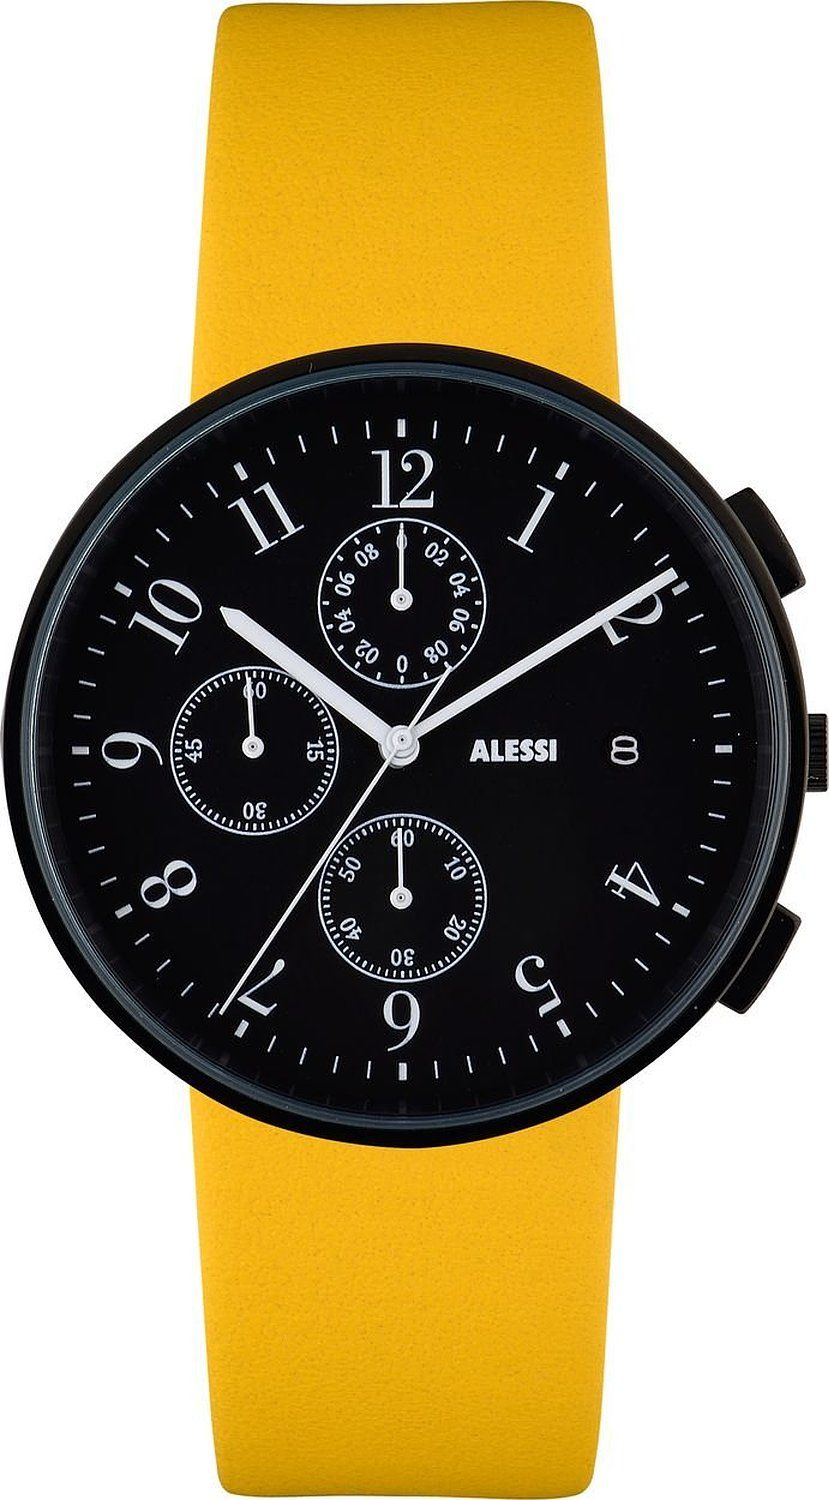 Alessi Men's Quartz Watch with Black Dial Chronograph Display and Yellow Leather Bracelet AL6400